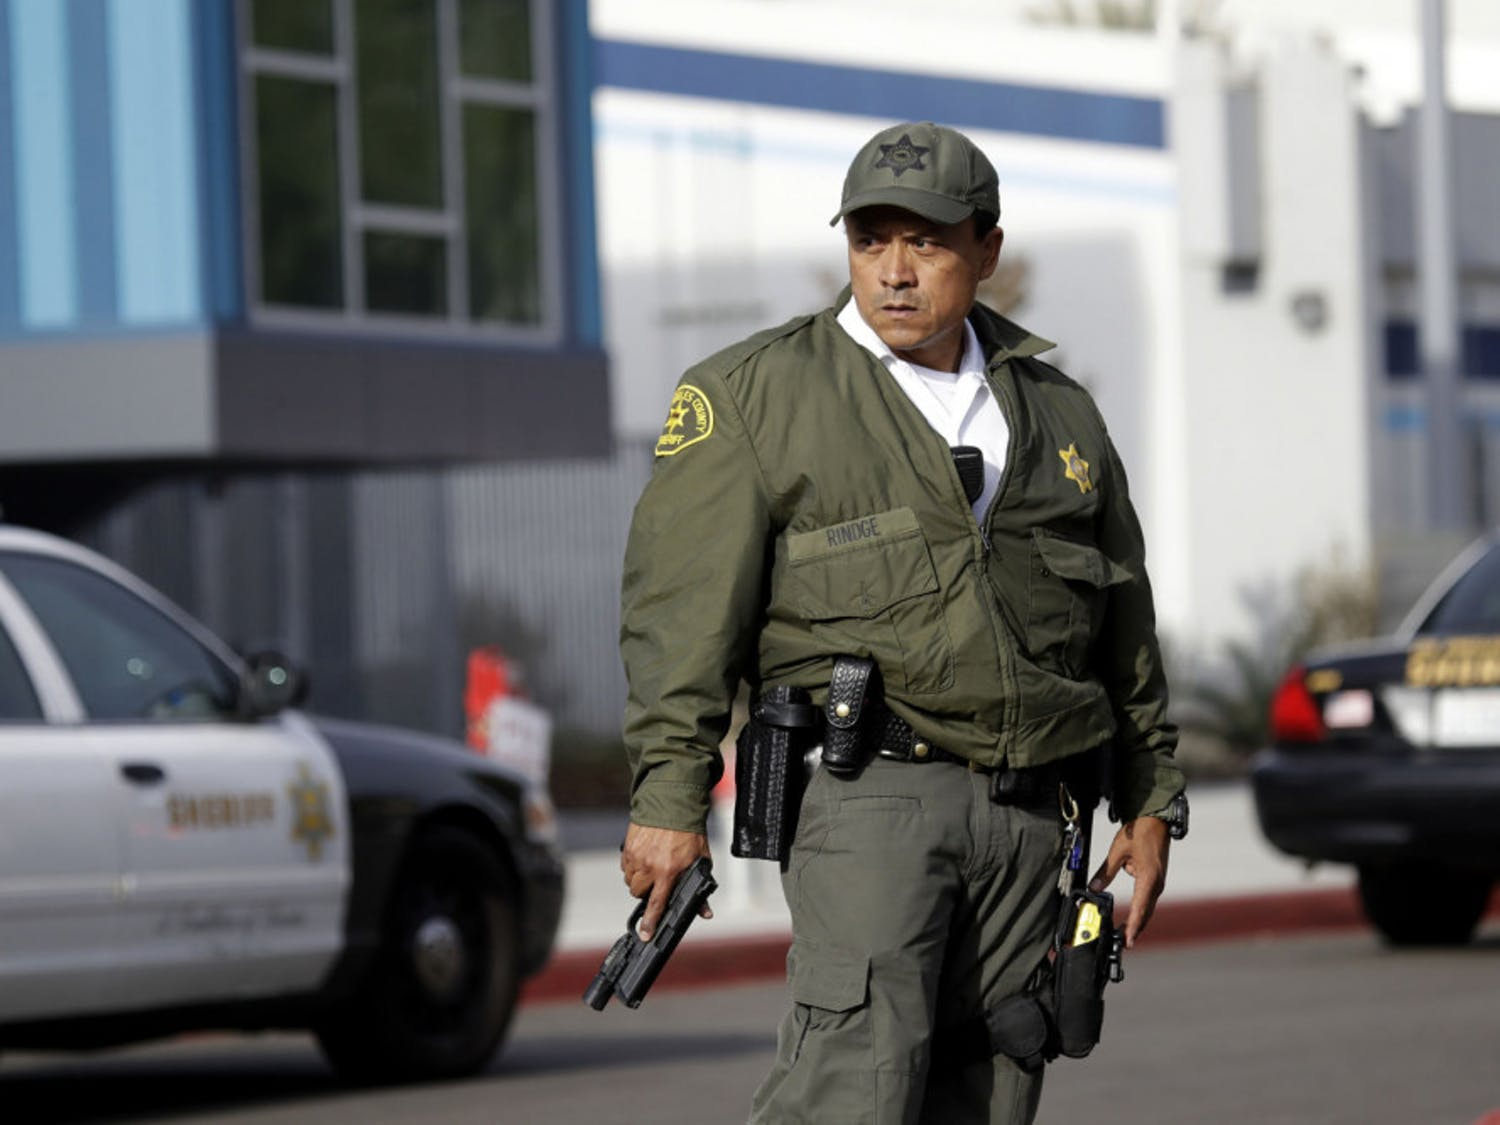 A member of the Los Angeles County Sheriff Department stands outside of Saugus High School with his weapon drawn after reports of a shooting on Thursday, Nov. 14, 2019, in Santa Clarita, Calif. (AP Photo/Marcio Jose Sanchez)